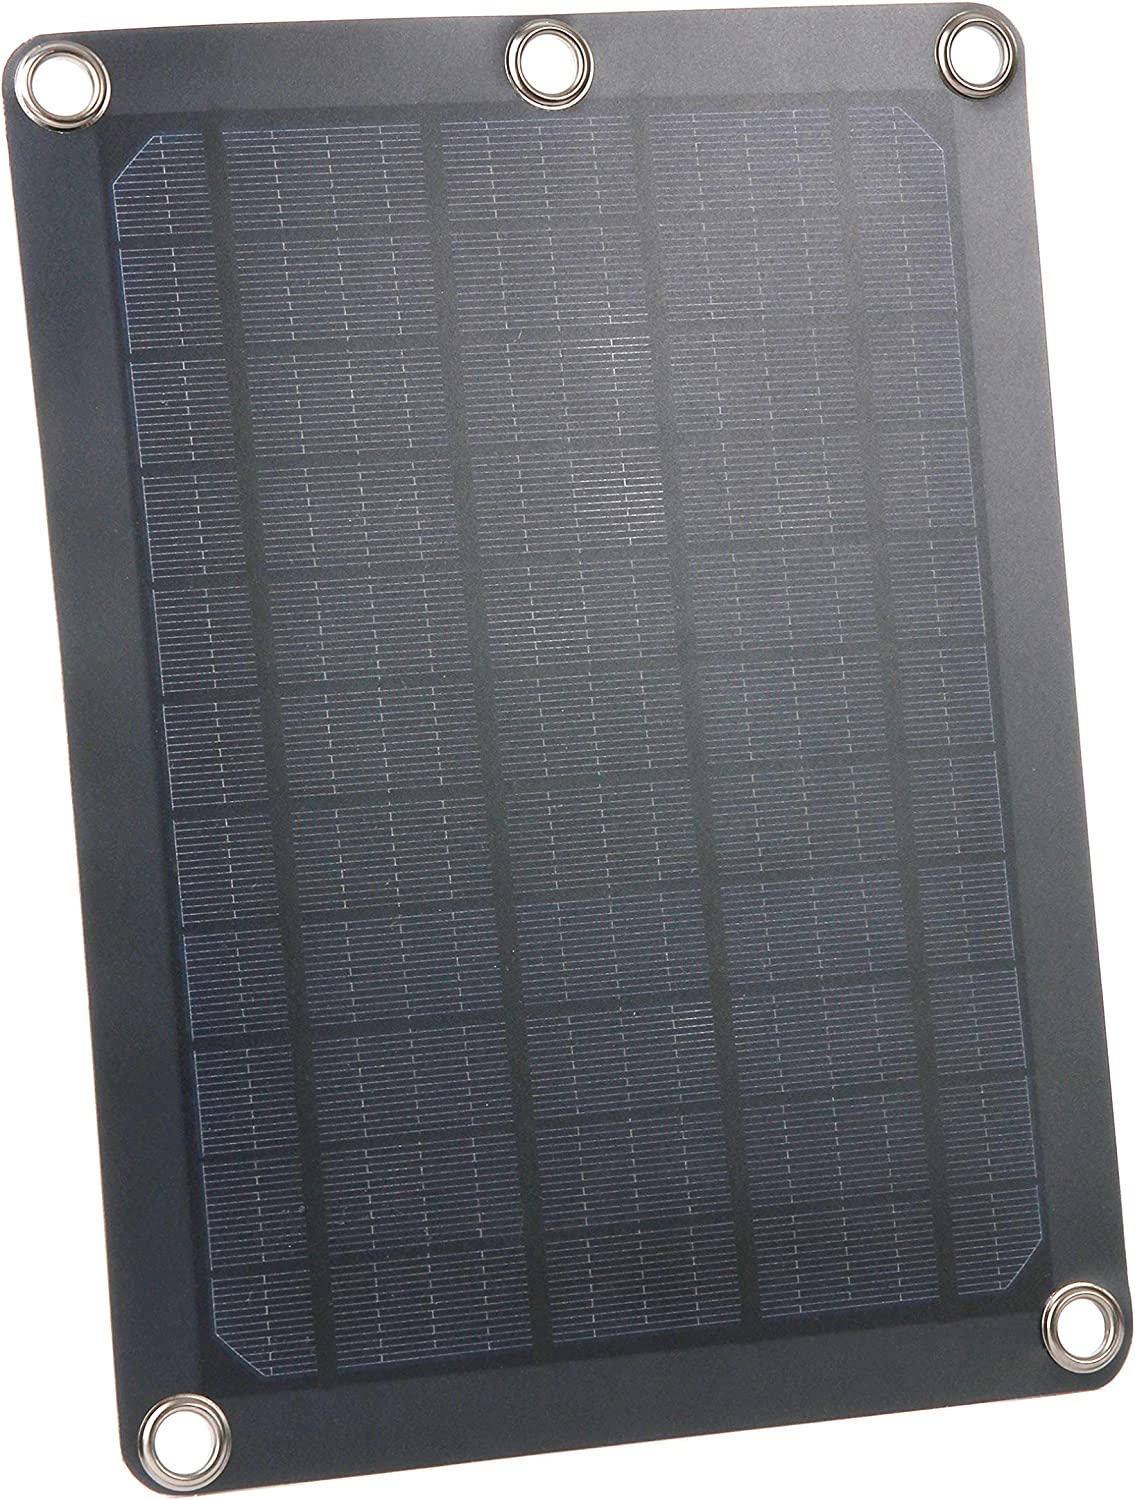 DURAGADGET Lightweight 5W 5V Solar Panel Charger w/USB Port - Compatible with Acer Switch 5 SW512-52-58Q4 | Switch 5 SW512-52-70DC | Switch 3 SW312-31-P5VG & Chromebook Tab 10 Tablets